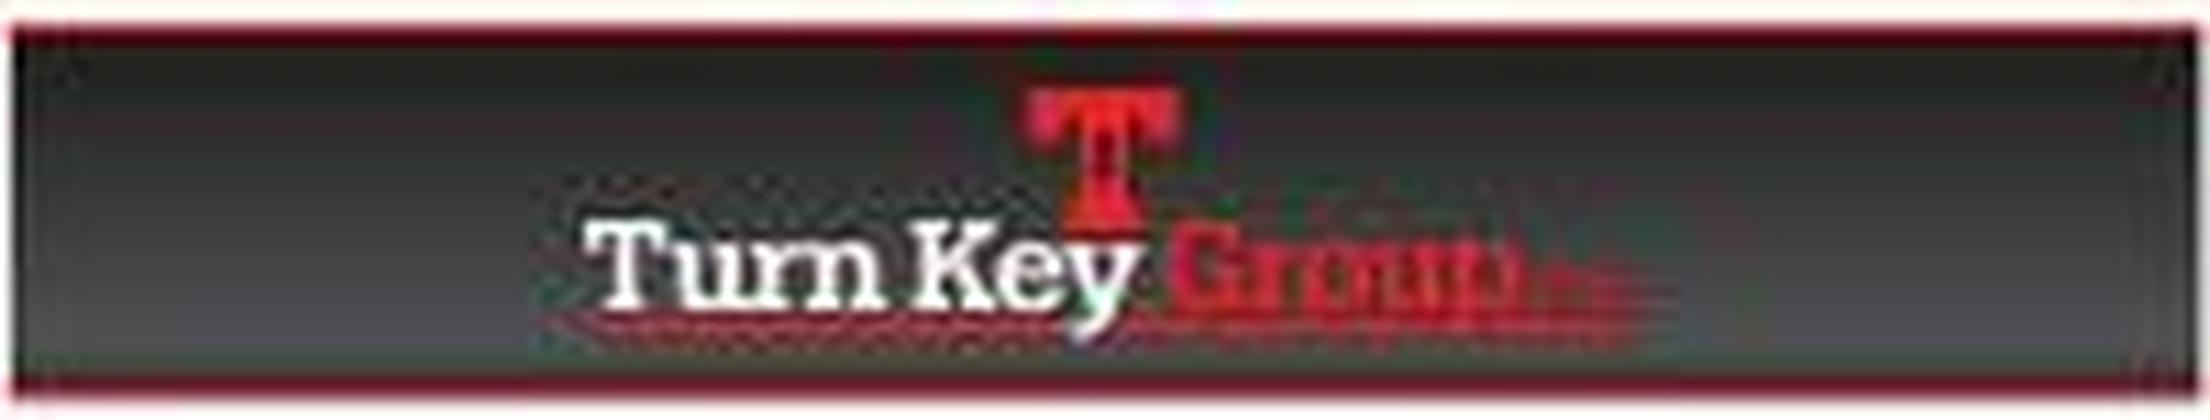 Turn Key Group